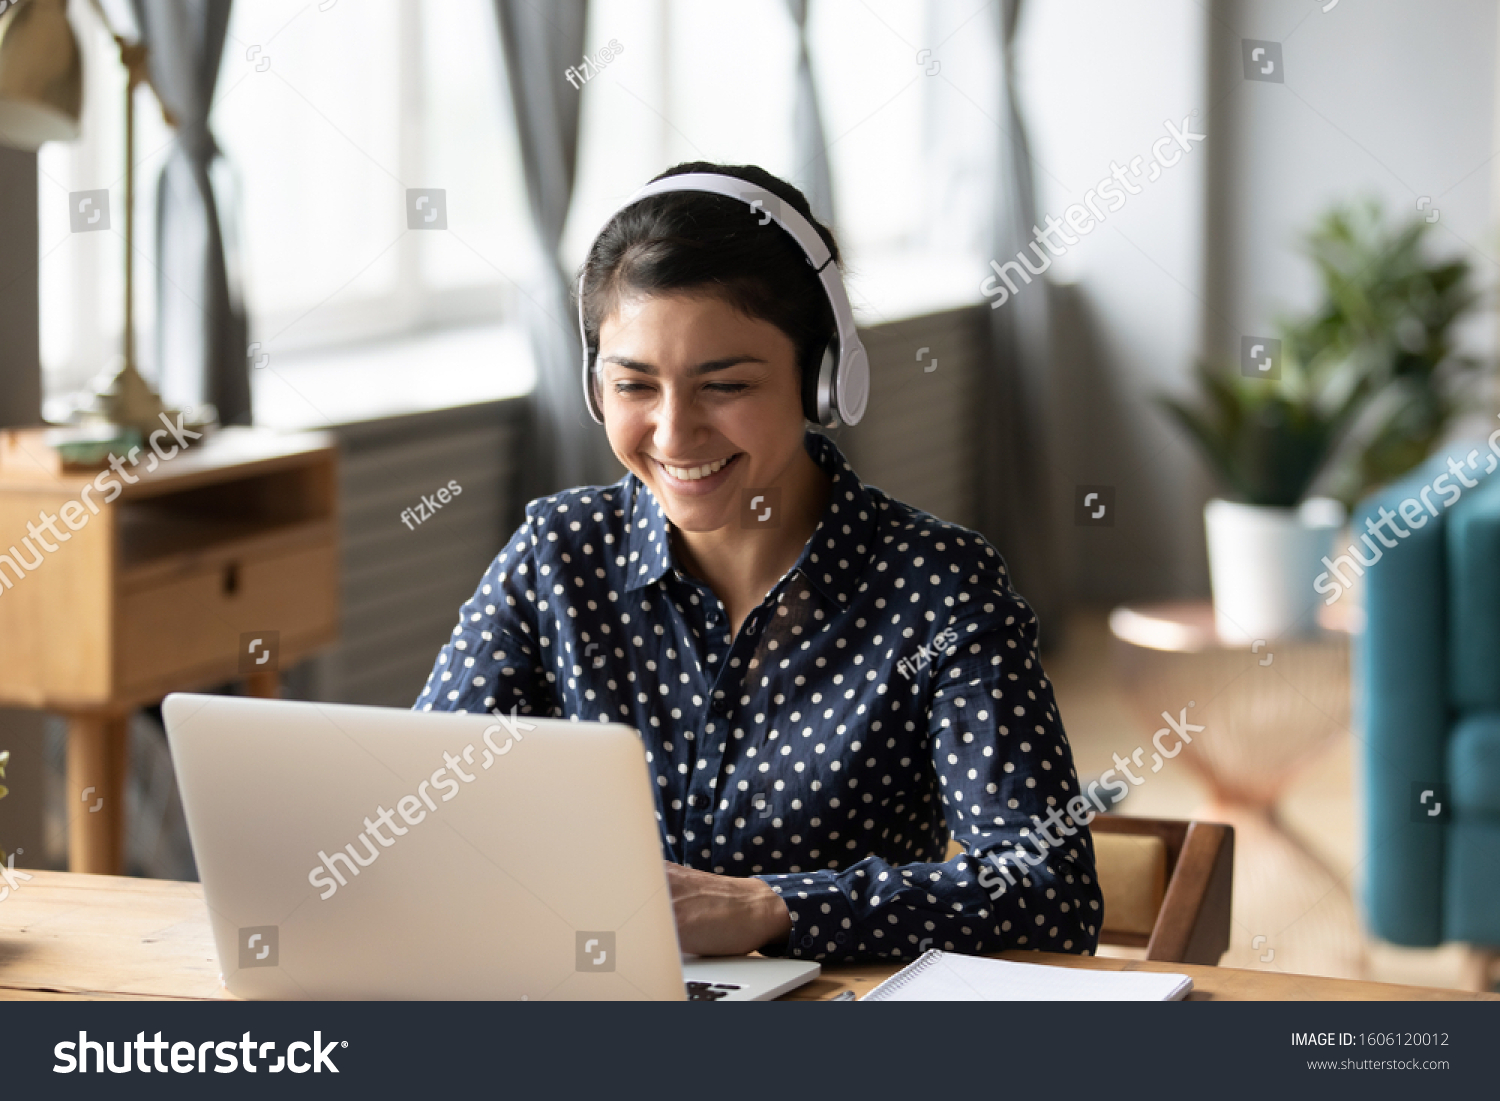 Happy indian young girl student wear headphone watch webinar listen online course communicate by conference video call e learn language in app laugh study with teacher lesson look at laptop at home #1606120012